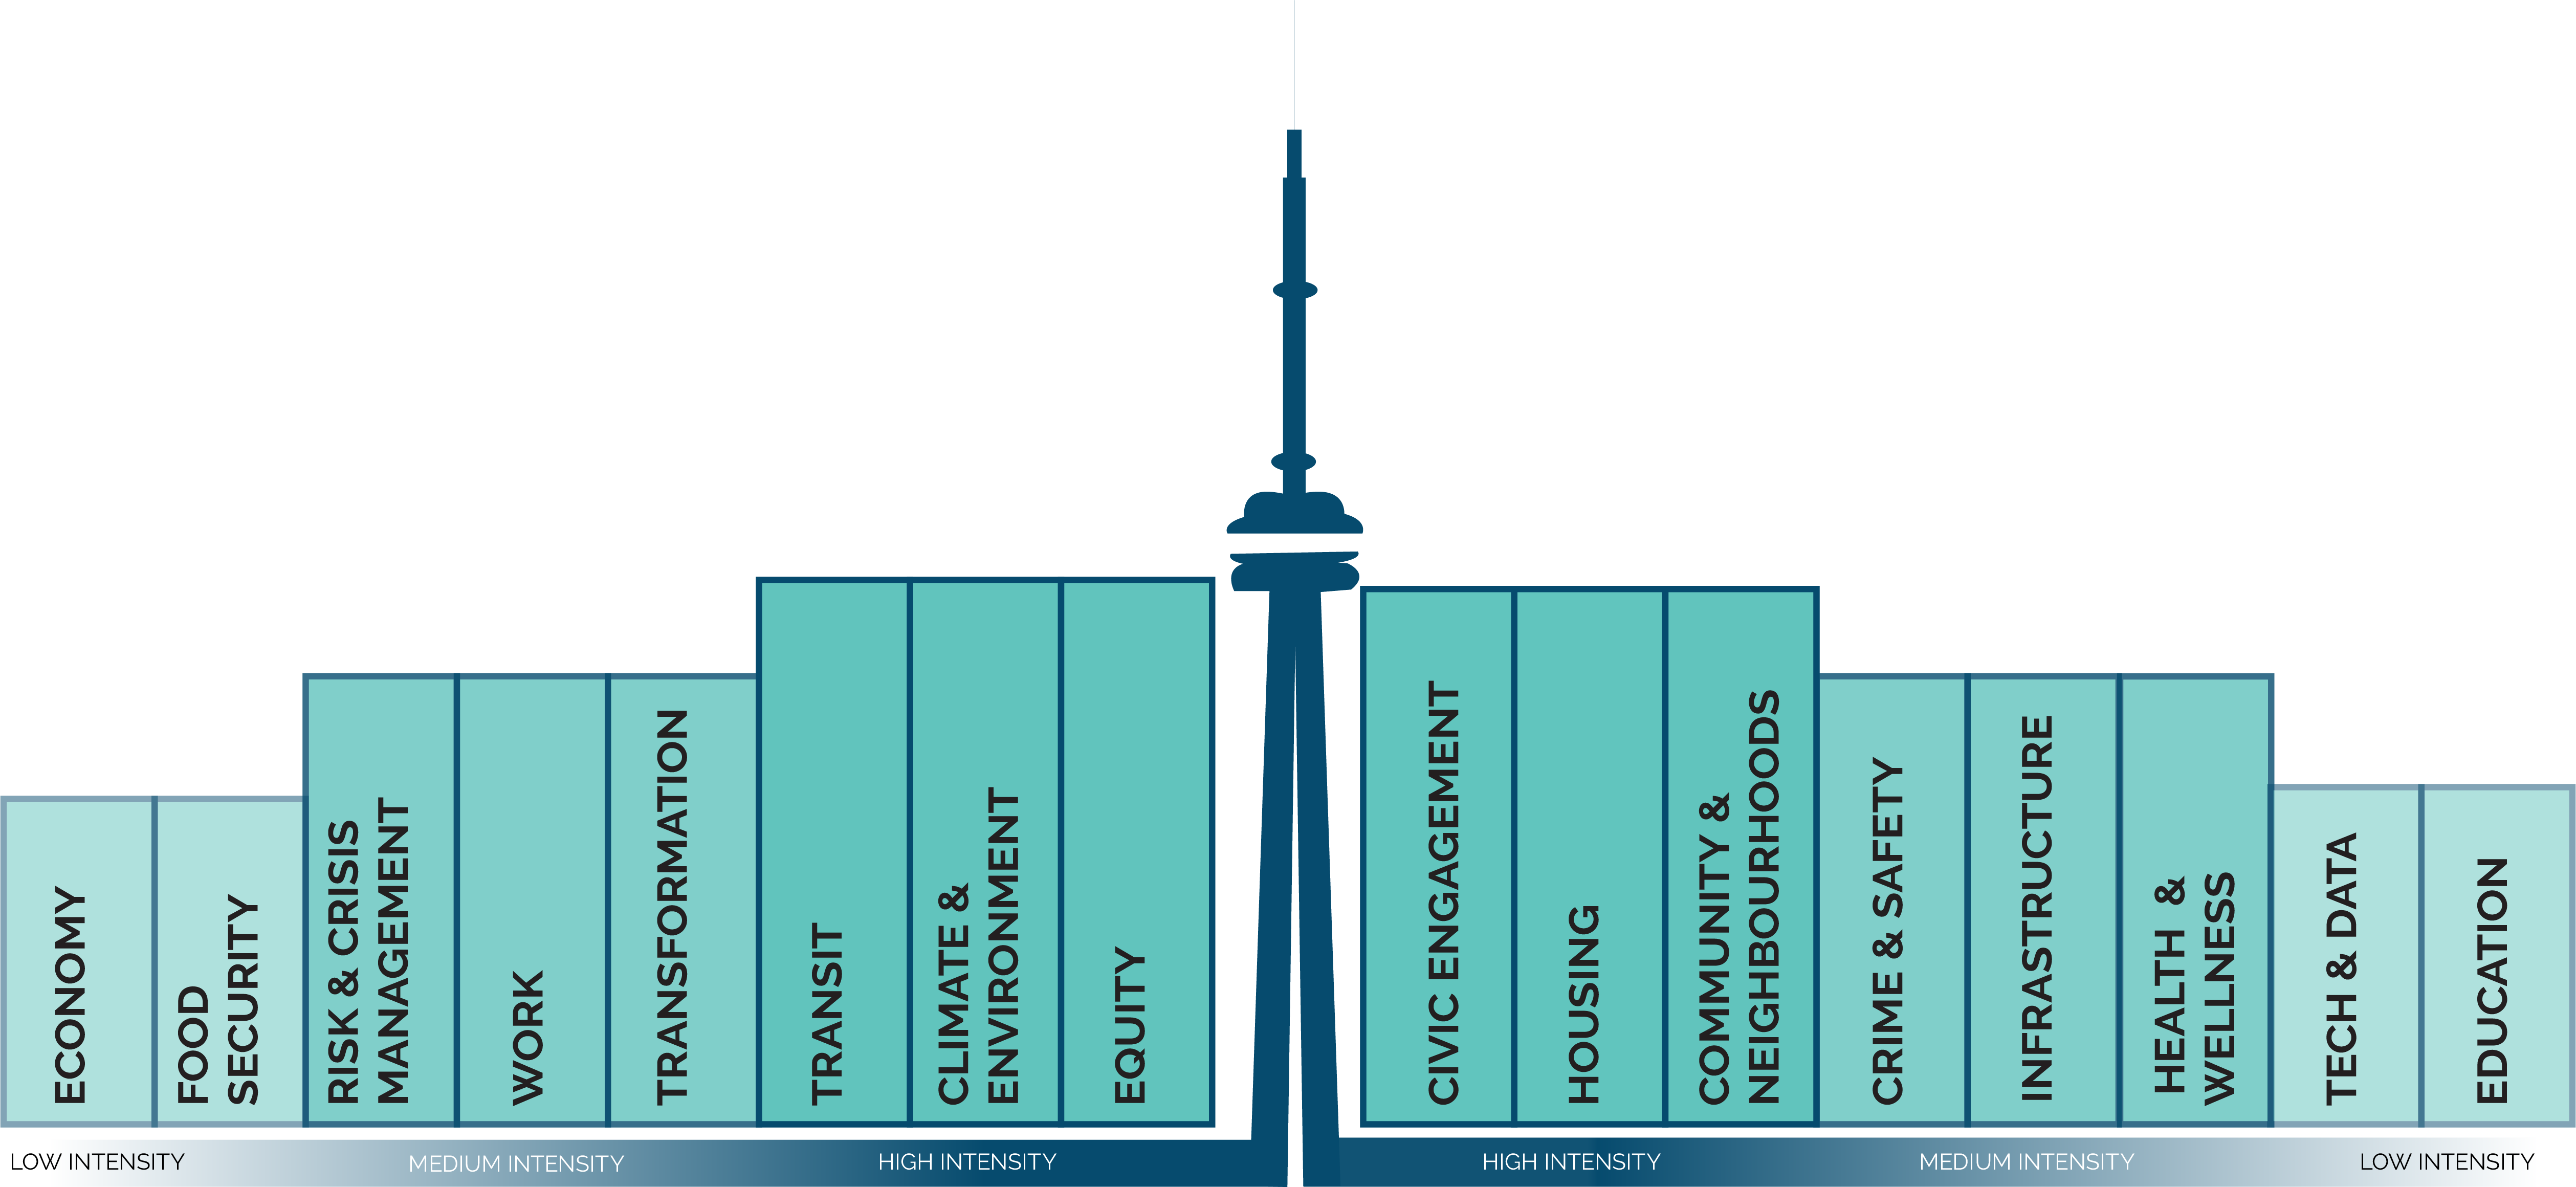 Low Intensity: Food security, Tech & Data, Economy, Education; Medium Intensity: Transformation, Crime & Safety, Work, Infrastructure, Risk & Crisis Management, Health & Wellness; High Intensity: Equity, Civic Engagement, Climate & Environment, Housing, Getting Around, Community & Neighbourhoods